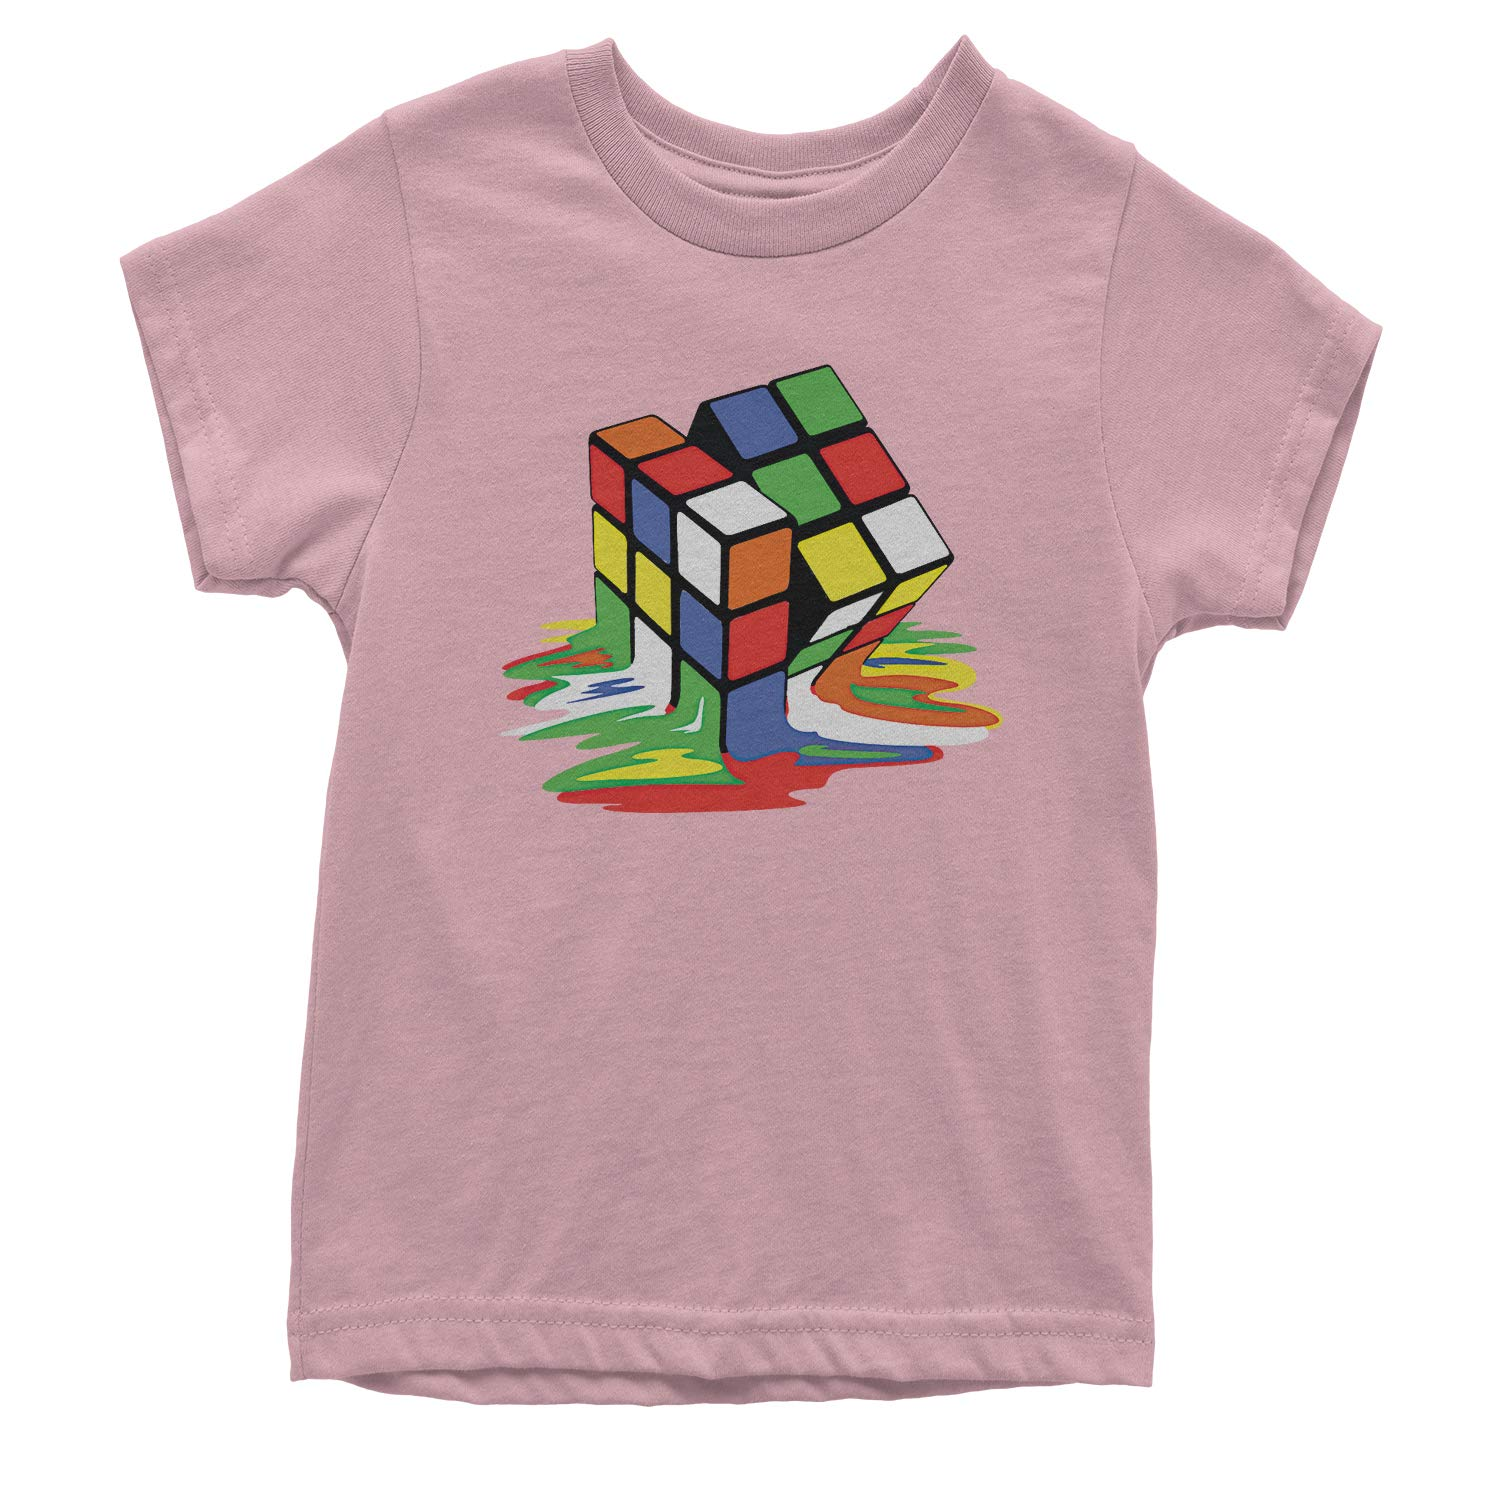 Expression Tees Melting Rubiks Cube Youth T-Shirt